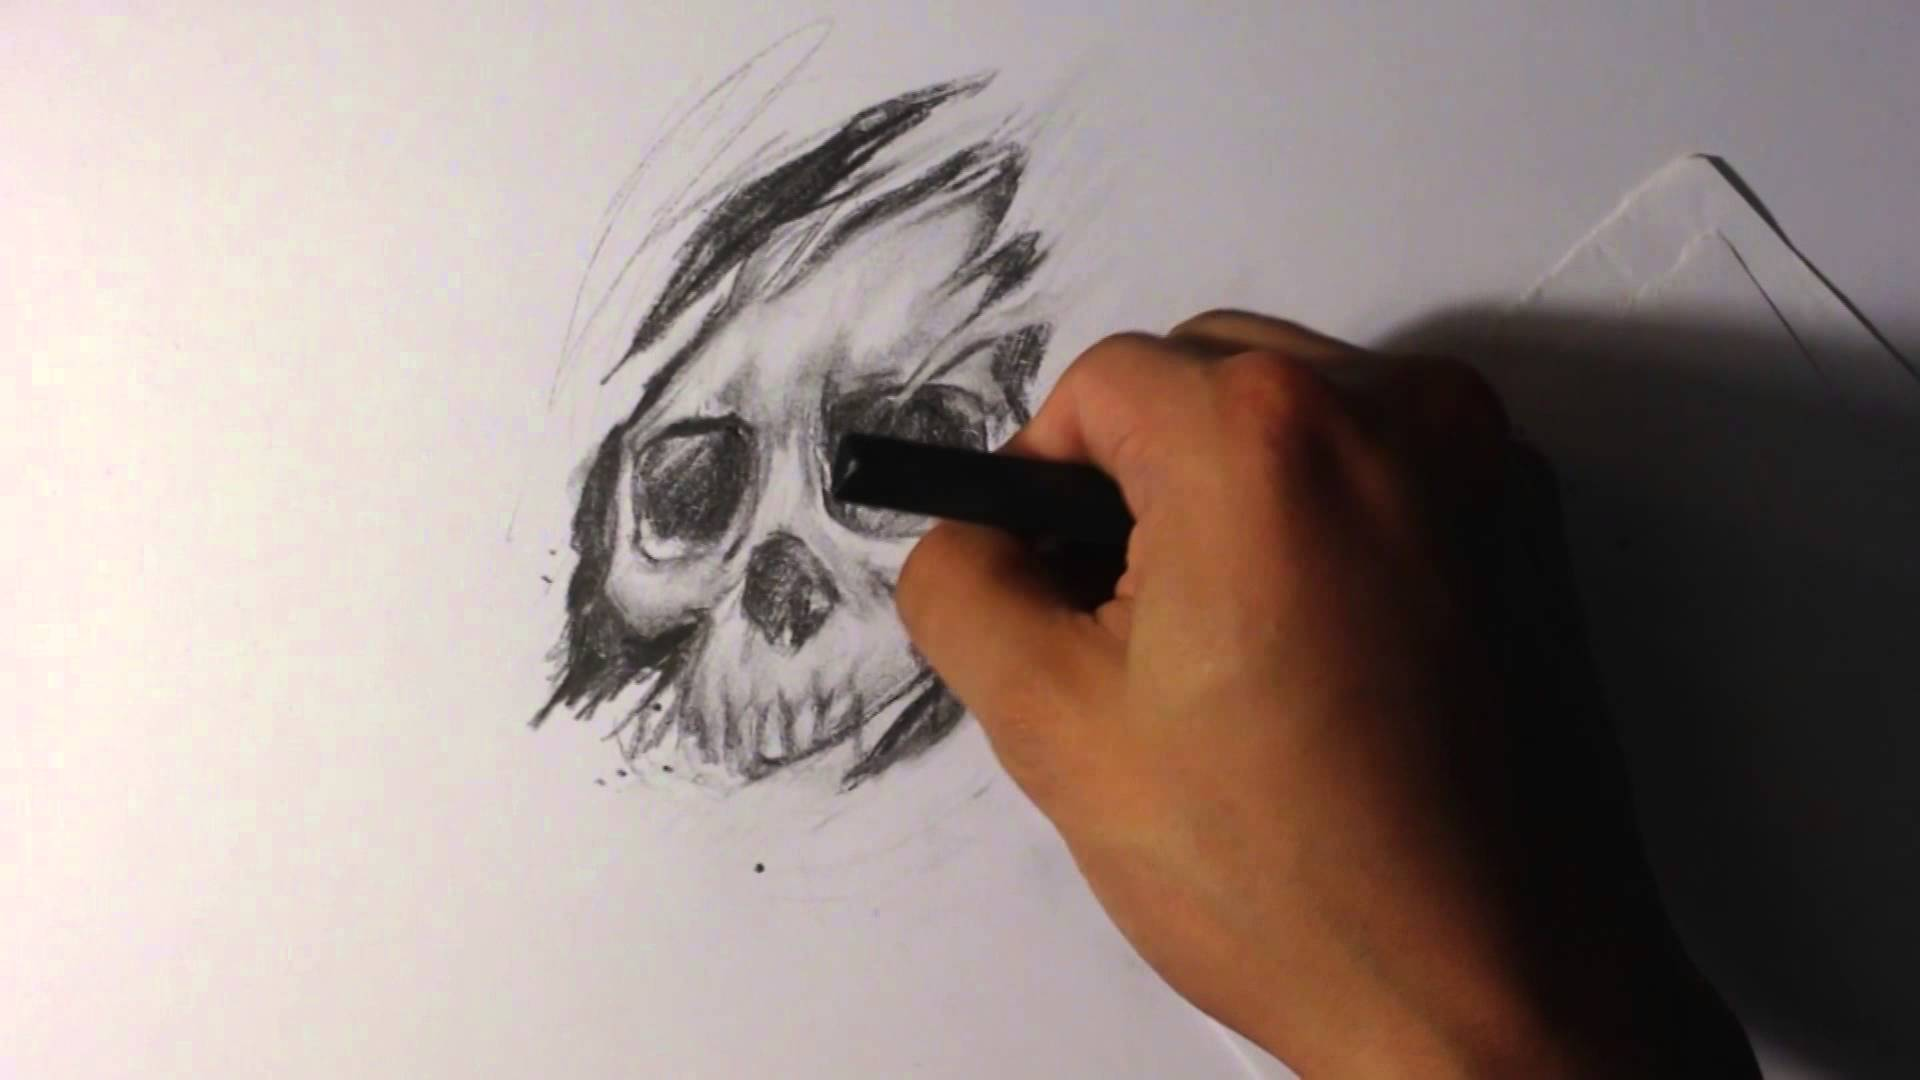 1920x1080 How To Draw A Skull Tearing Out Of The Skin